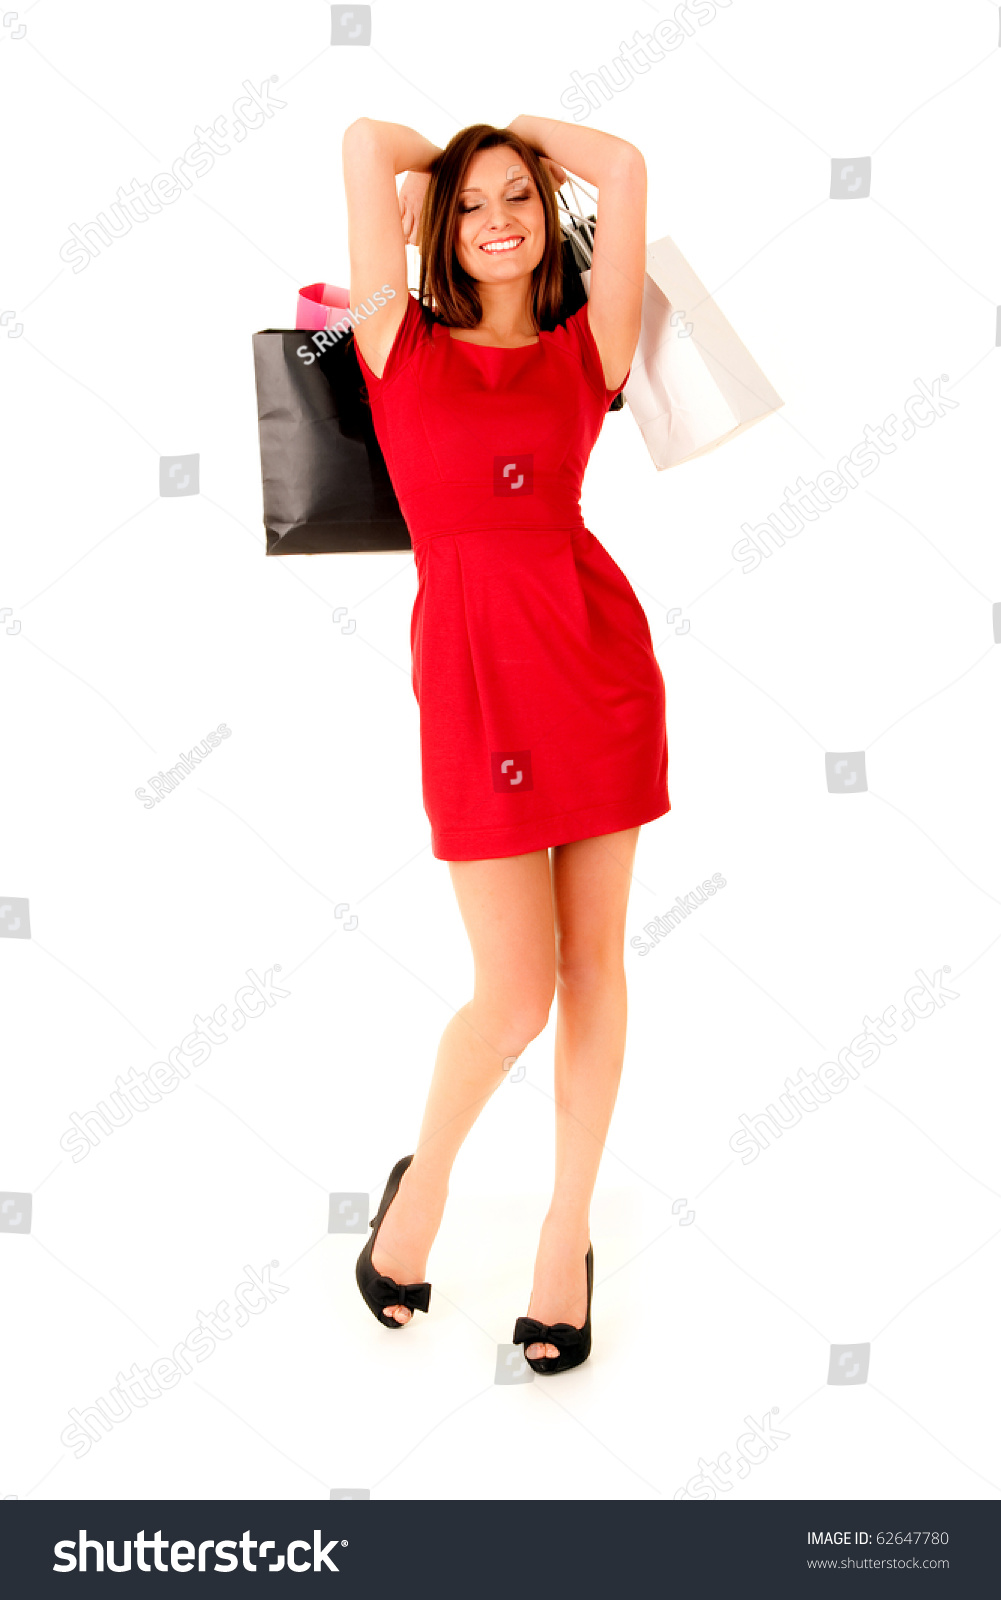 Red Dress And Shoes